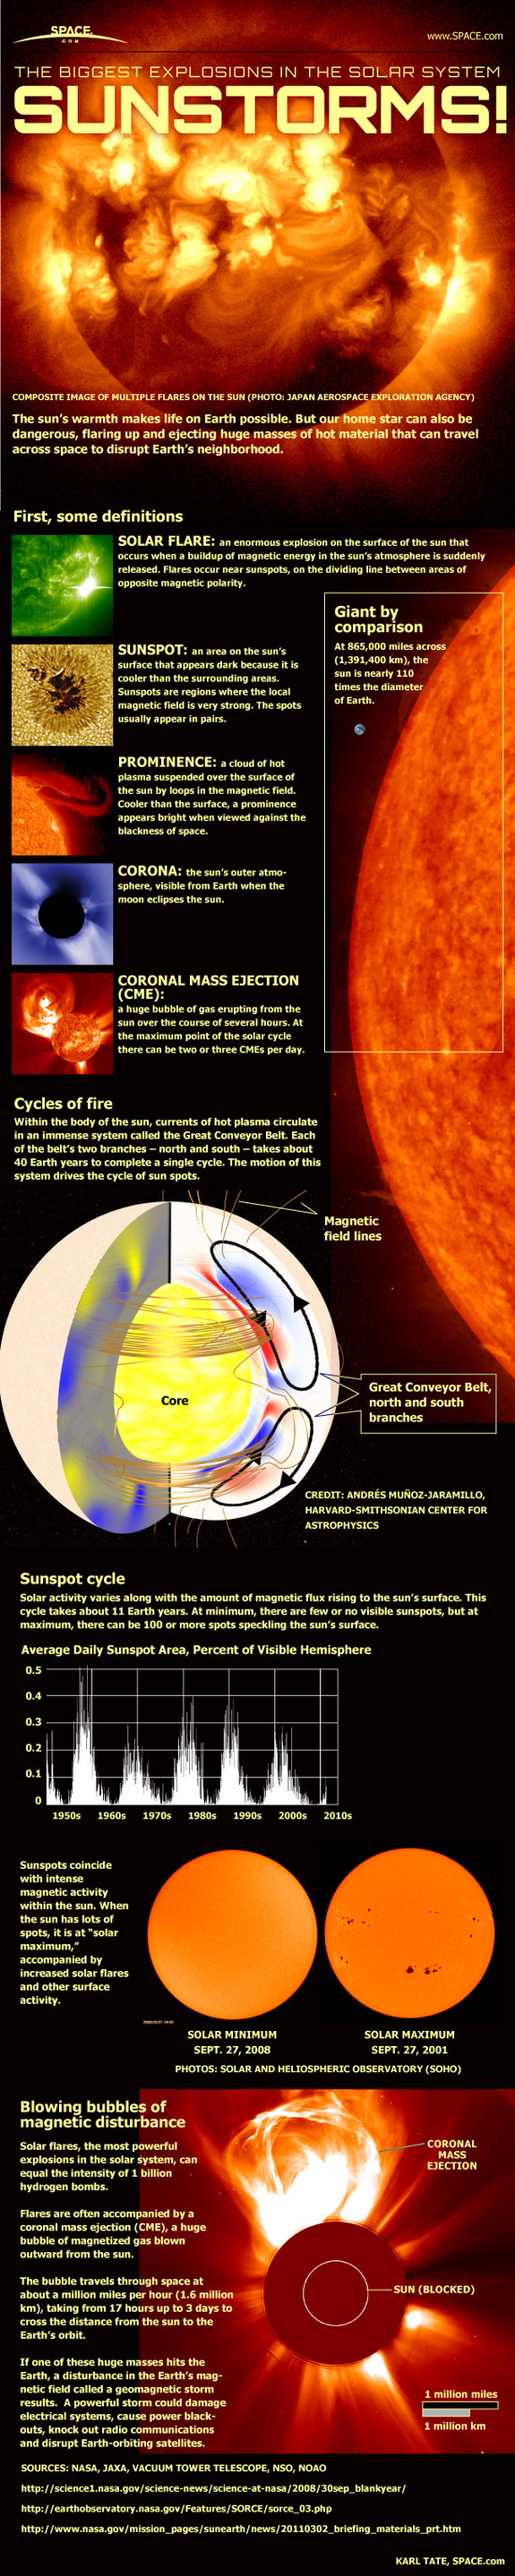 Sunstorms infographic